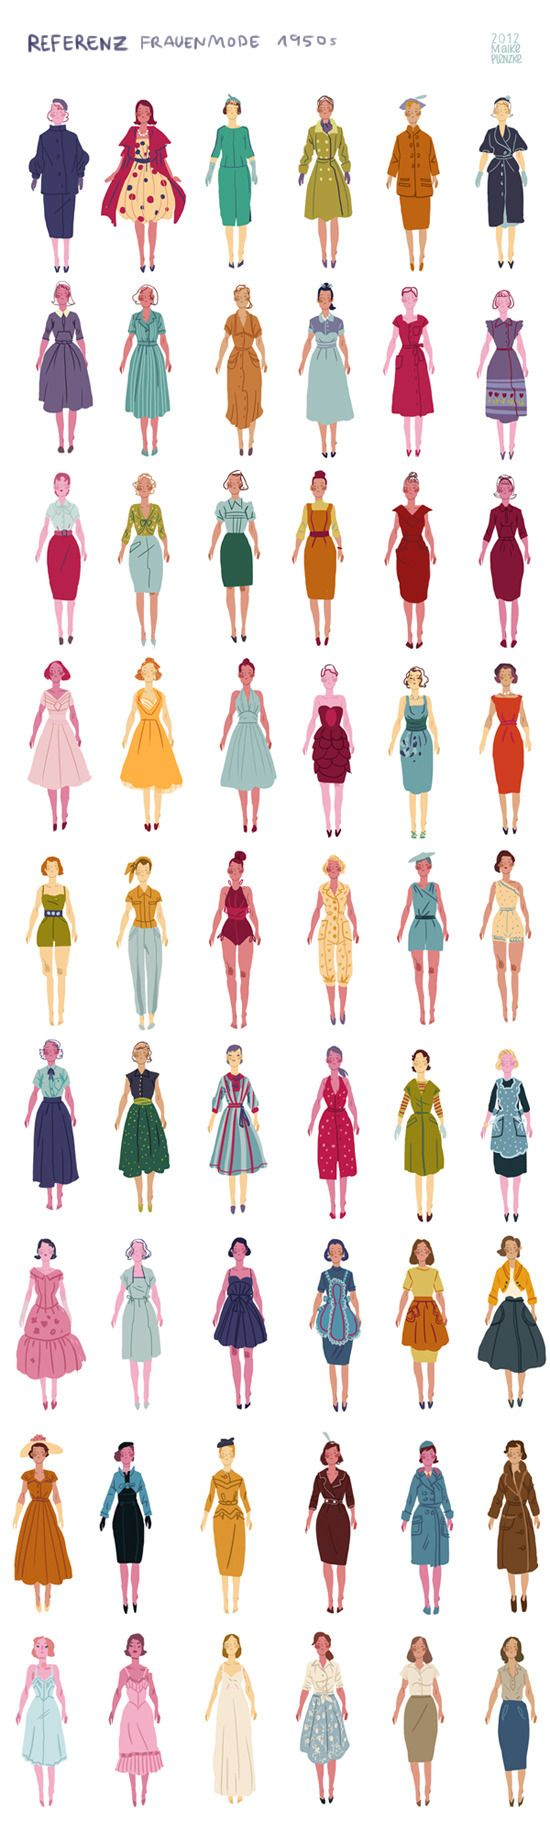 50's silhouettes by Maike Plenzke. (Also @Lia Marcoux look at all her illustrations look at them!)